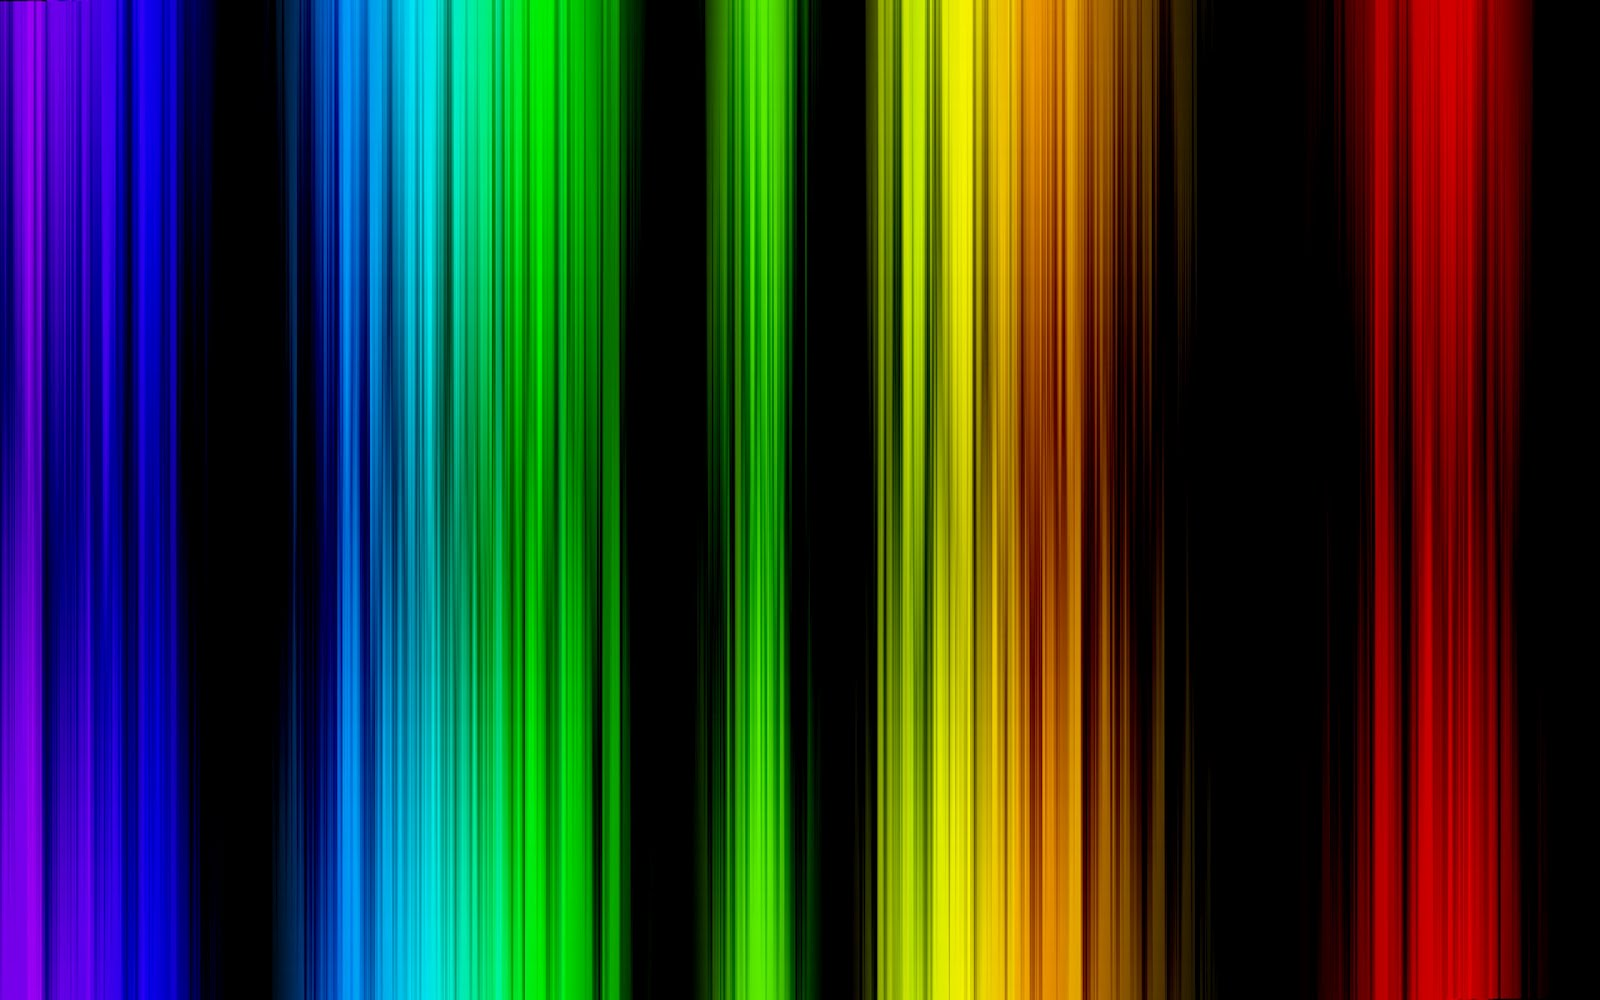 Hd Colorful Backgrounds: Awesome HD Wallpapers Colorful